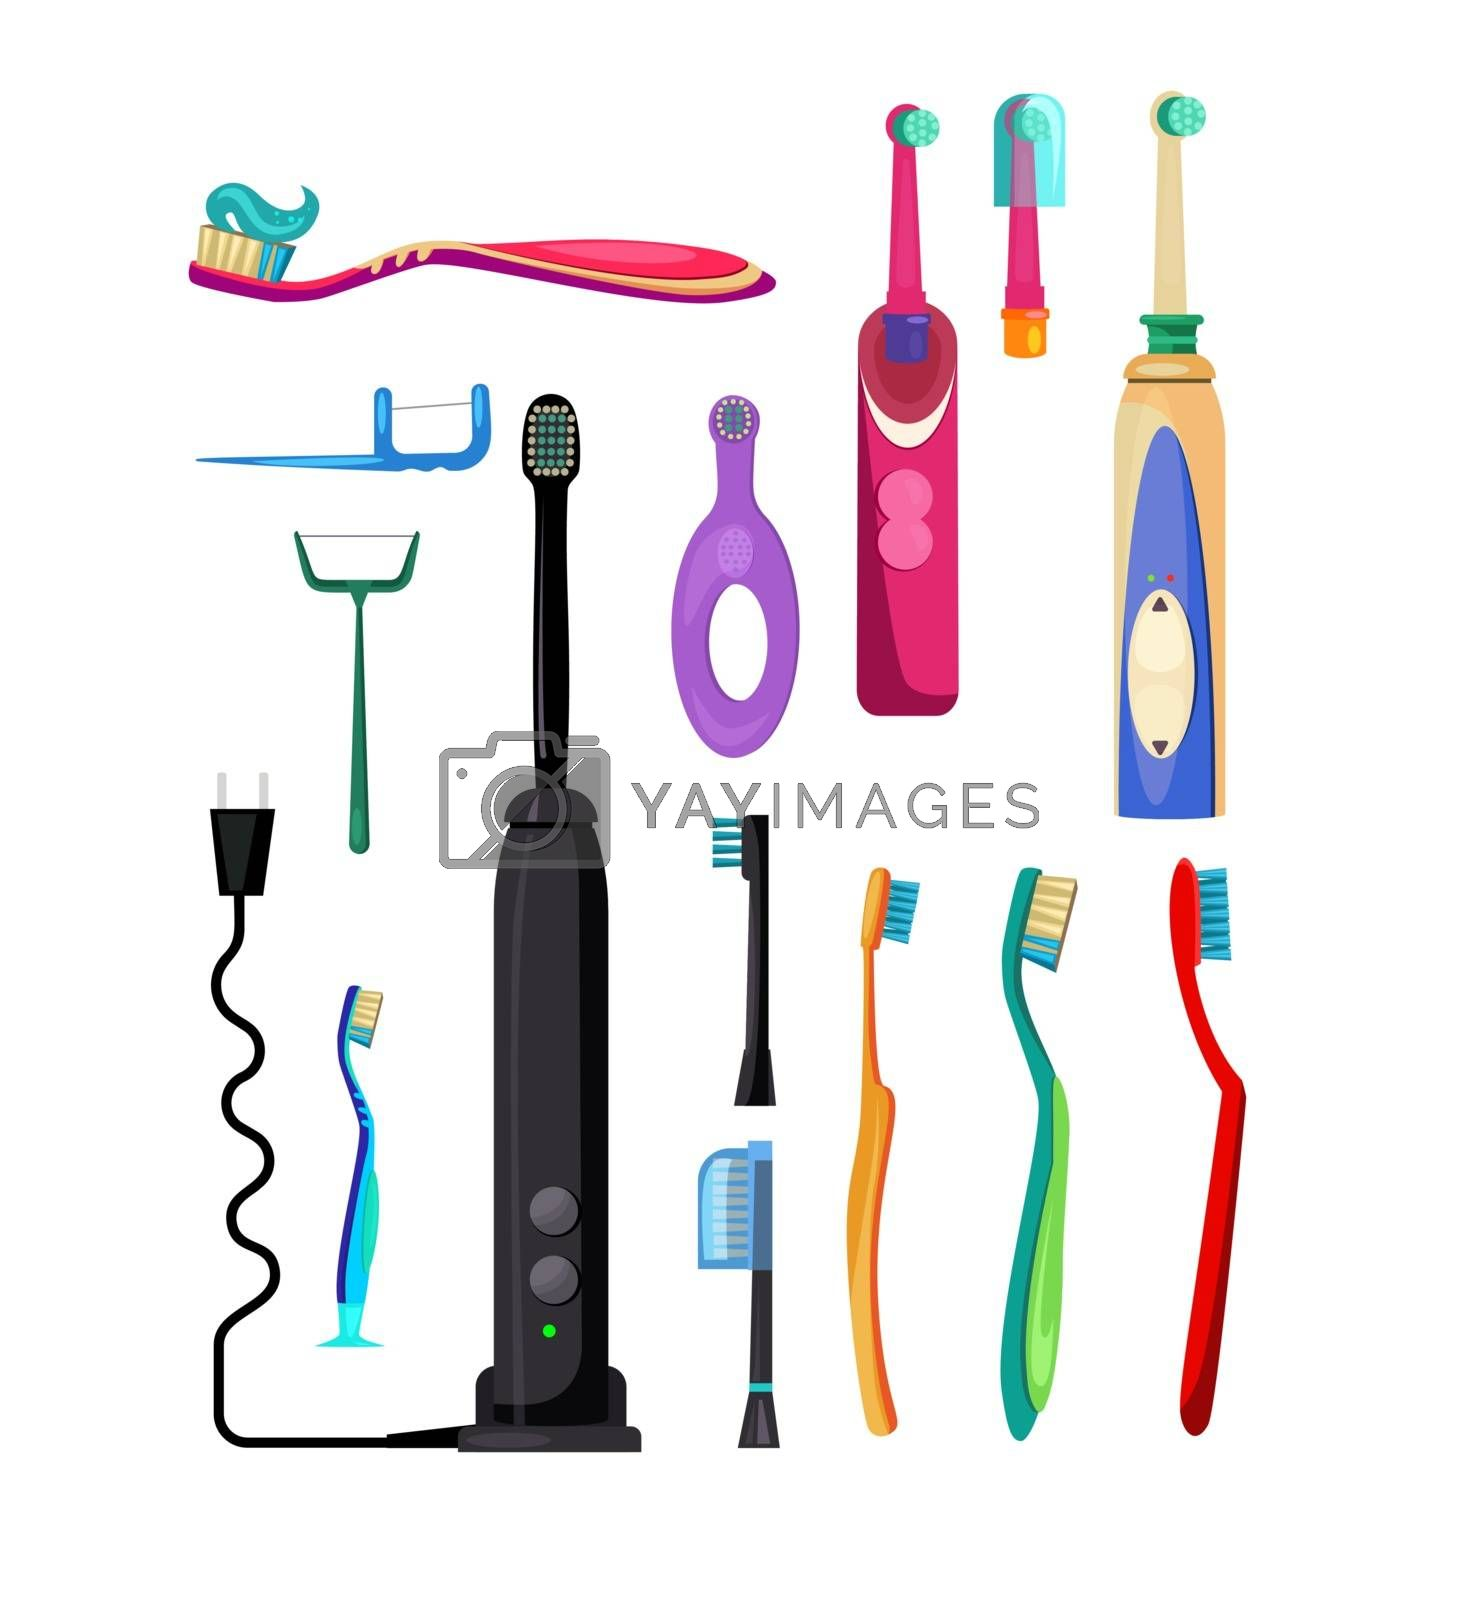 Electric and simple toothbrushes set. Collection for oral hygiene. Can be used for topics like dentistry, oral health, bathroom